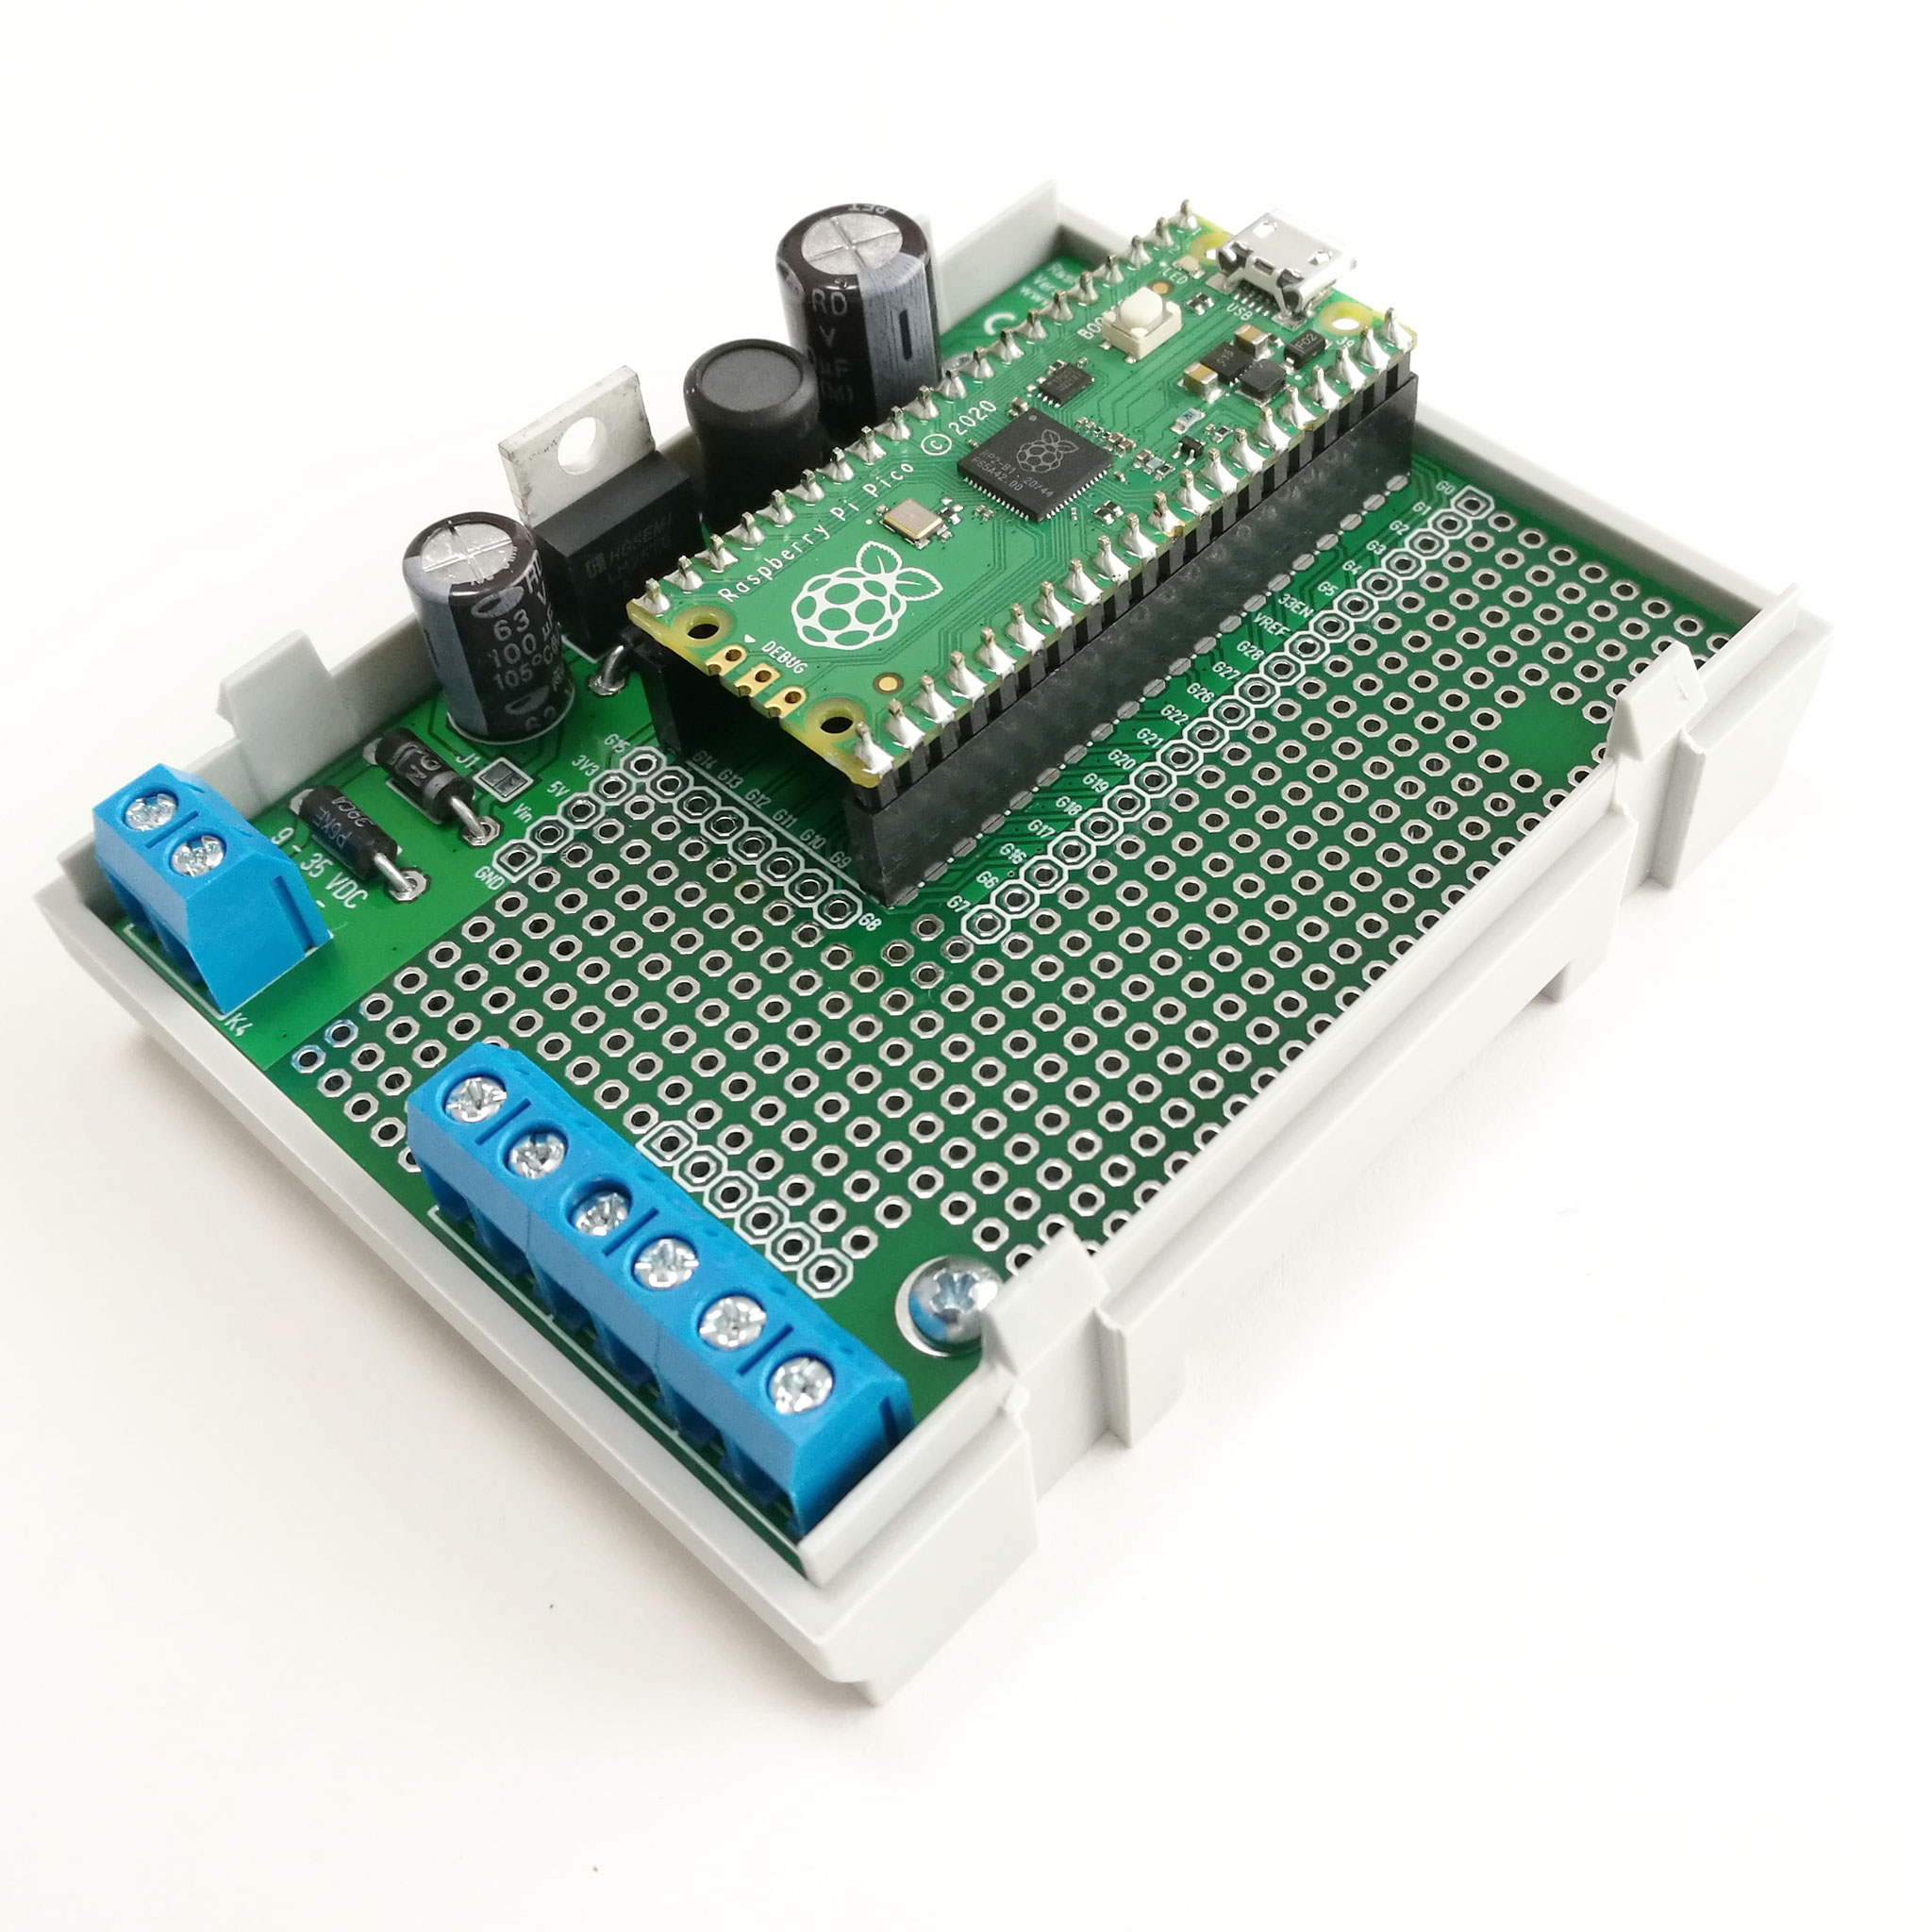 Opened enclosure with mounted Raspberry Pi Pico